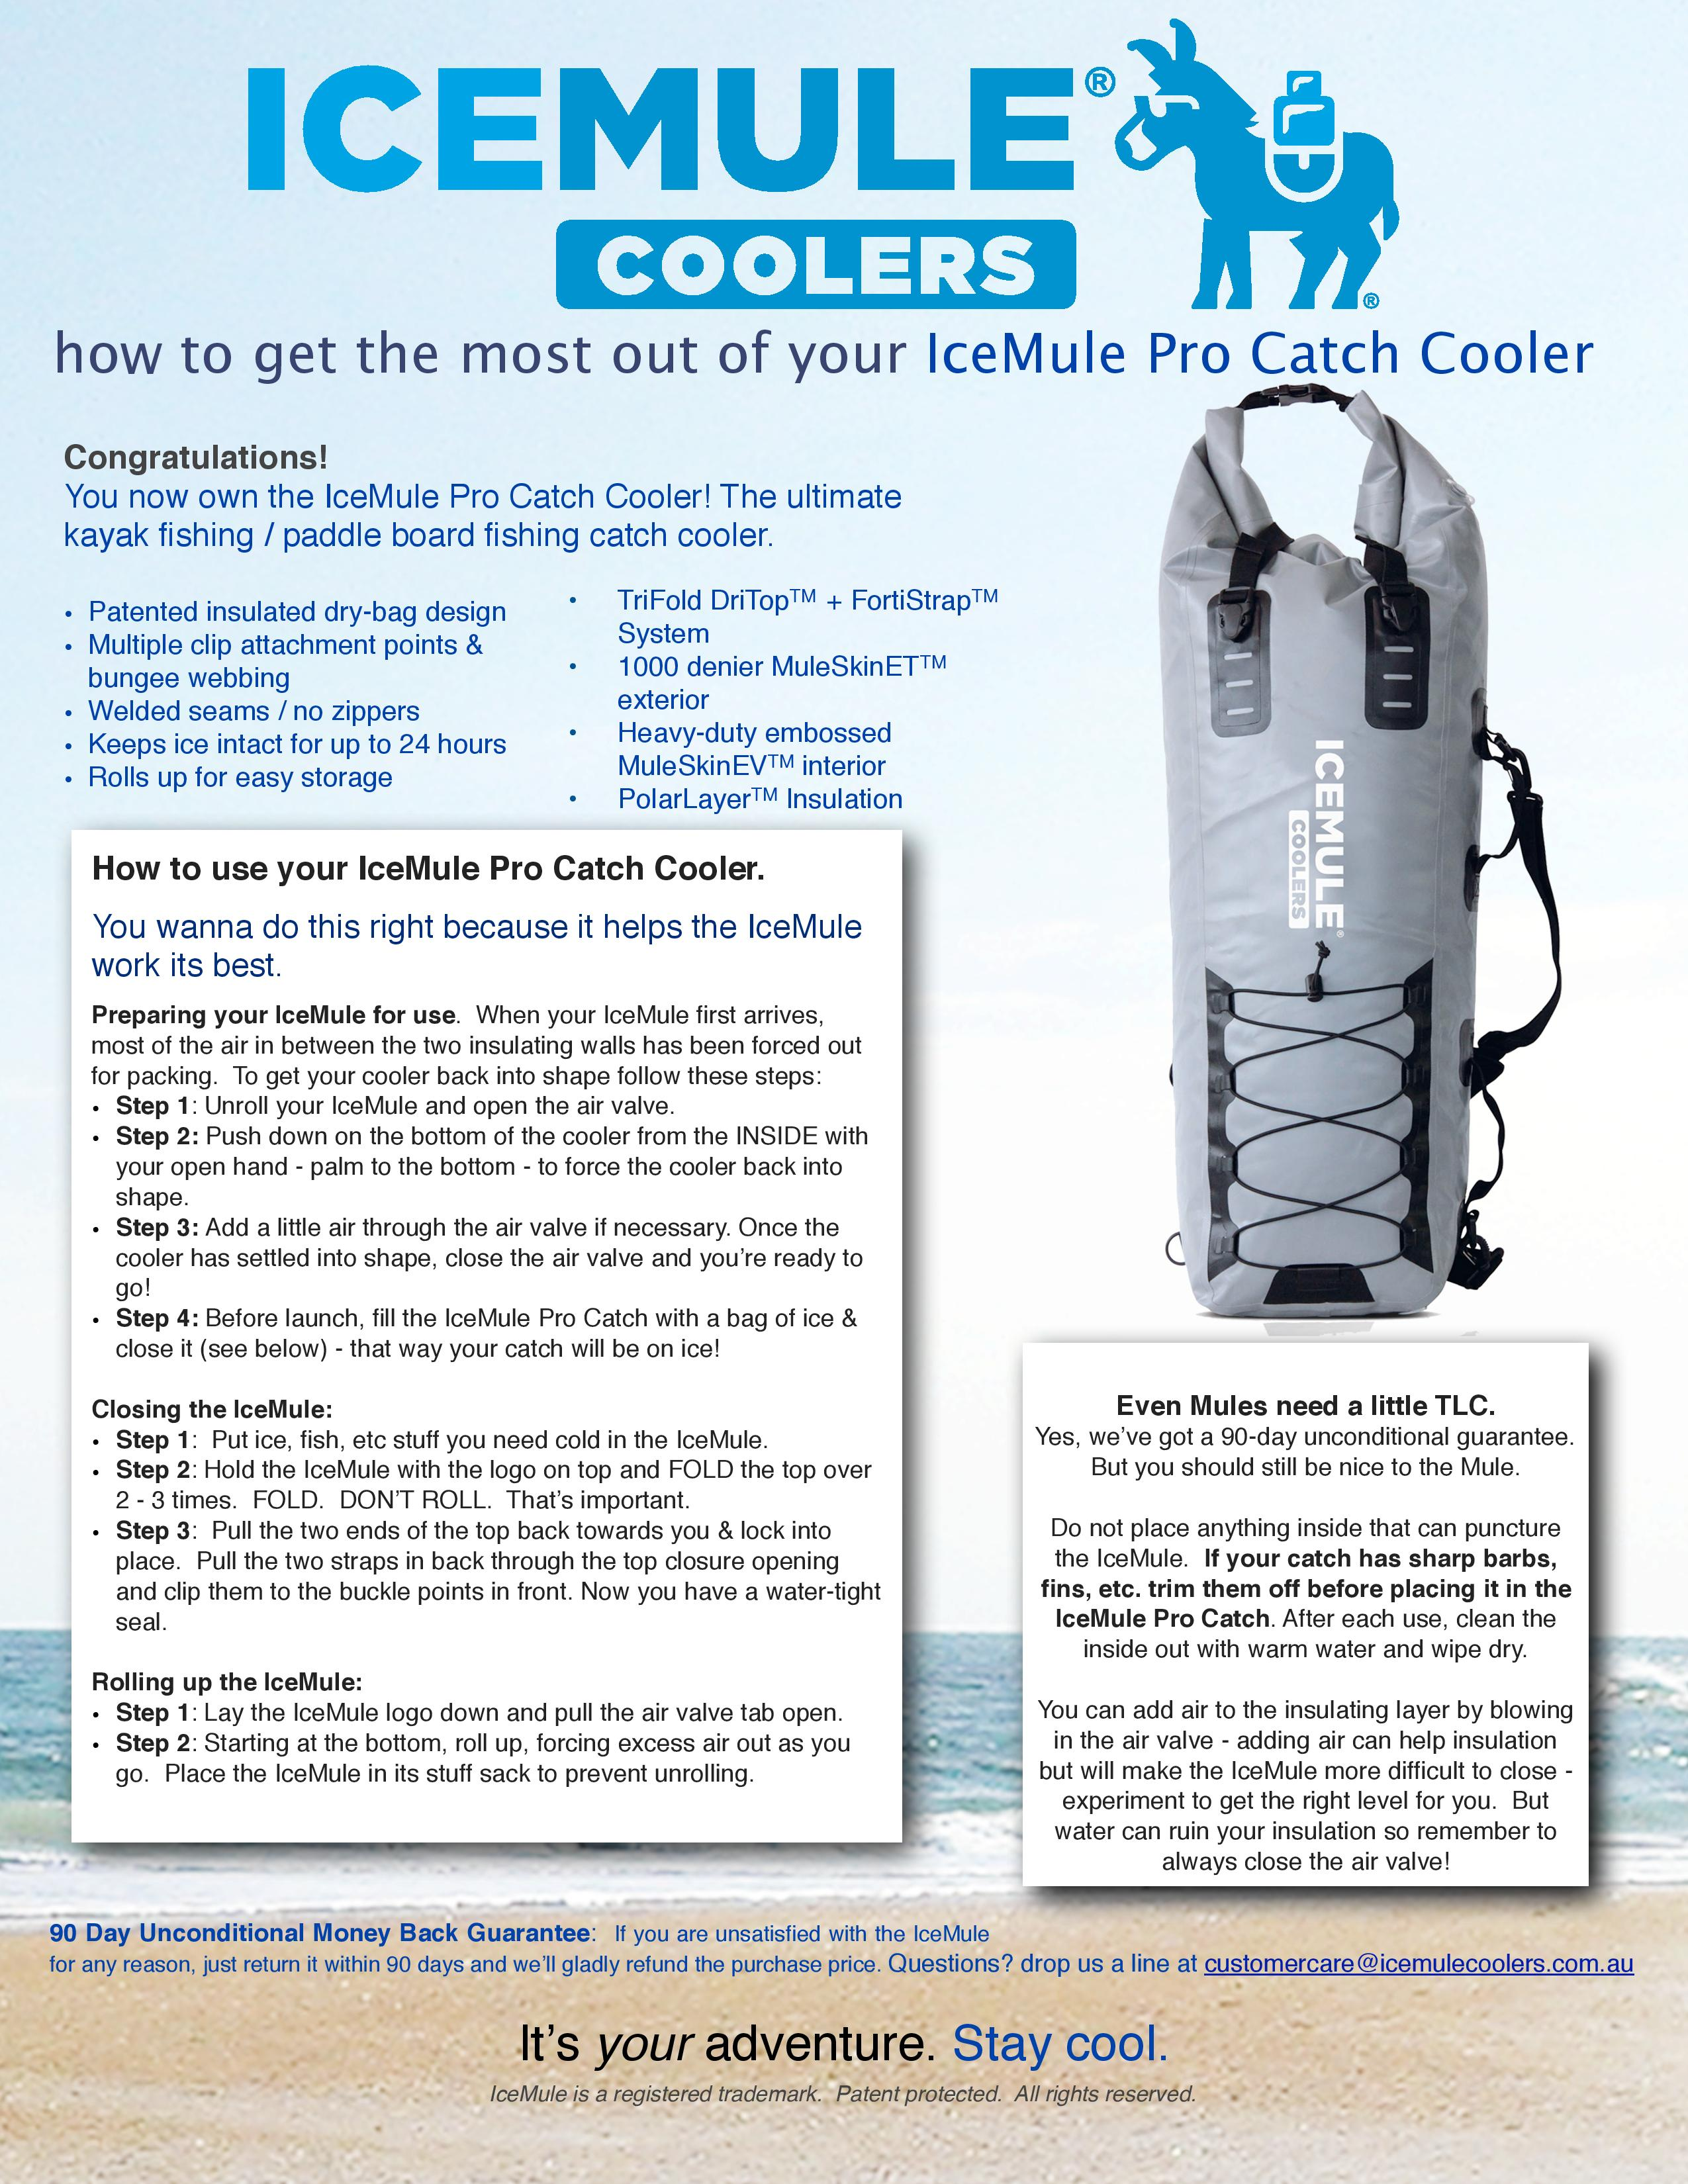 icemule-pro-catch-cooler-owner-s-sheet-2014vf-au-page-001.jpg